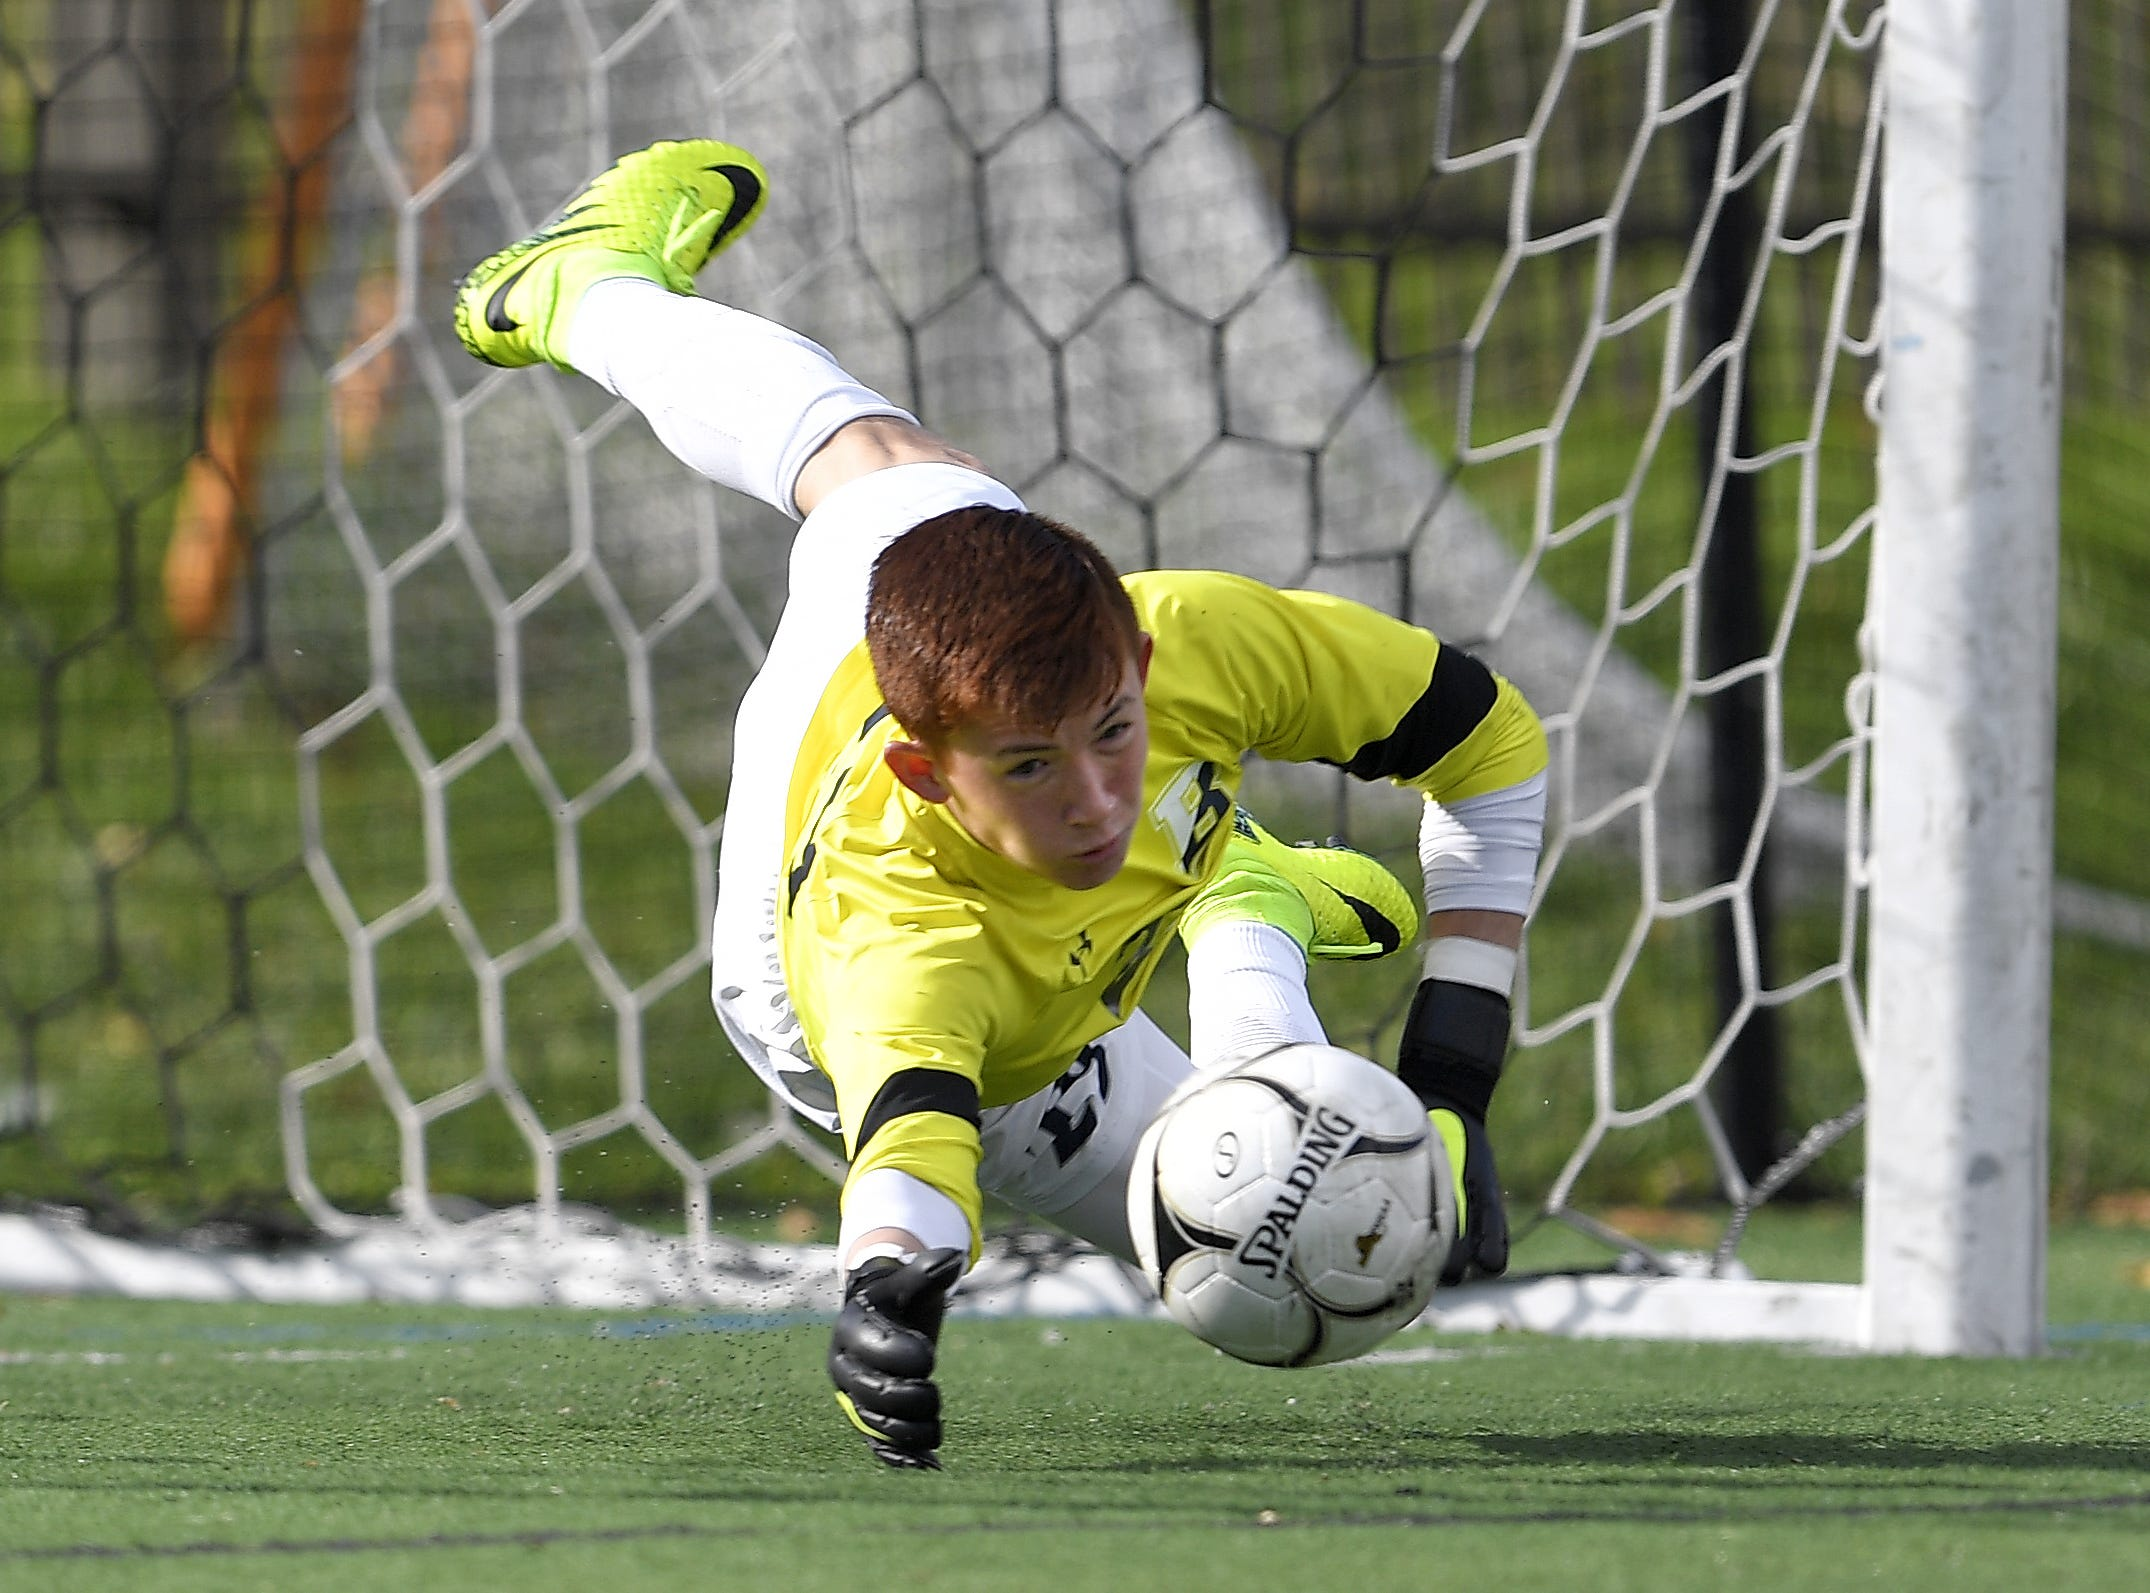 Brighton goalie Christian Burkhart makes a diving save during a Class A semifinal at the NYSPHSAA Boys Soccer Championships in Newburgh, N.Y., Saturday, Nov. 10, 2018.